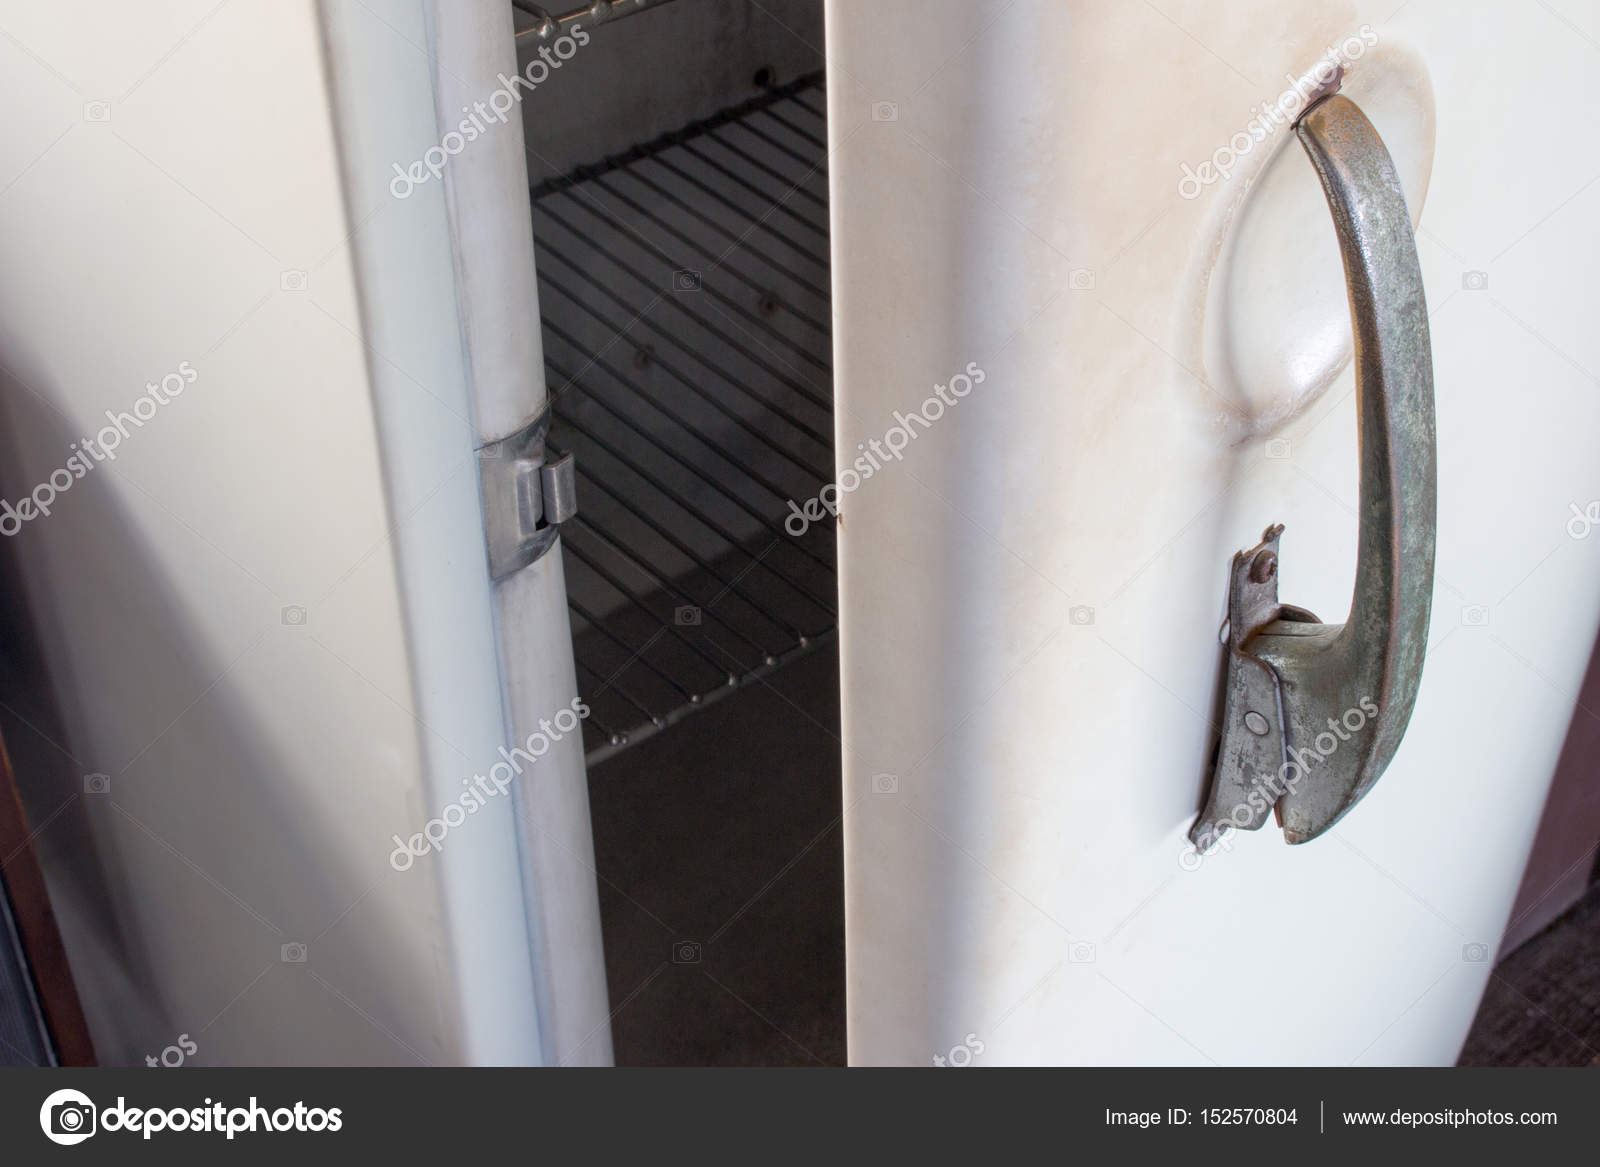 Old White Vintage Refrigerator Door Handle With Copy Space For Text. U2014  Stock Photo